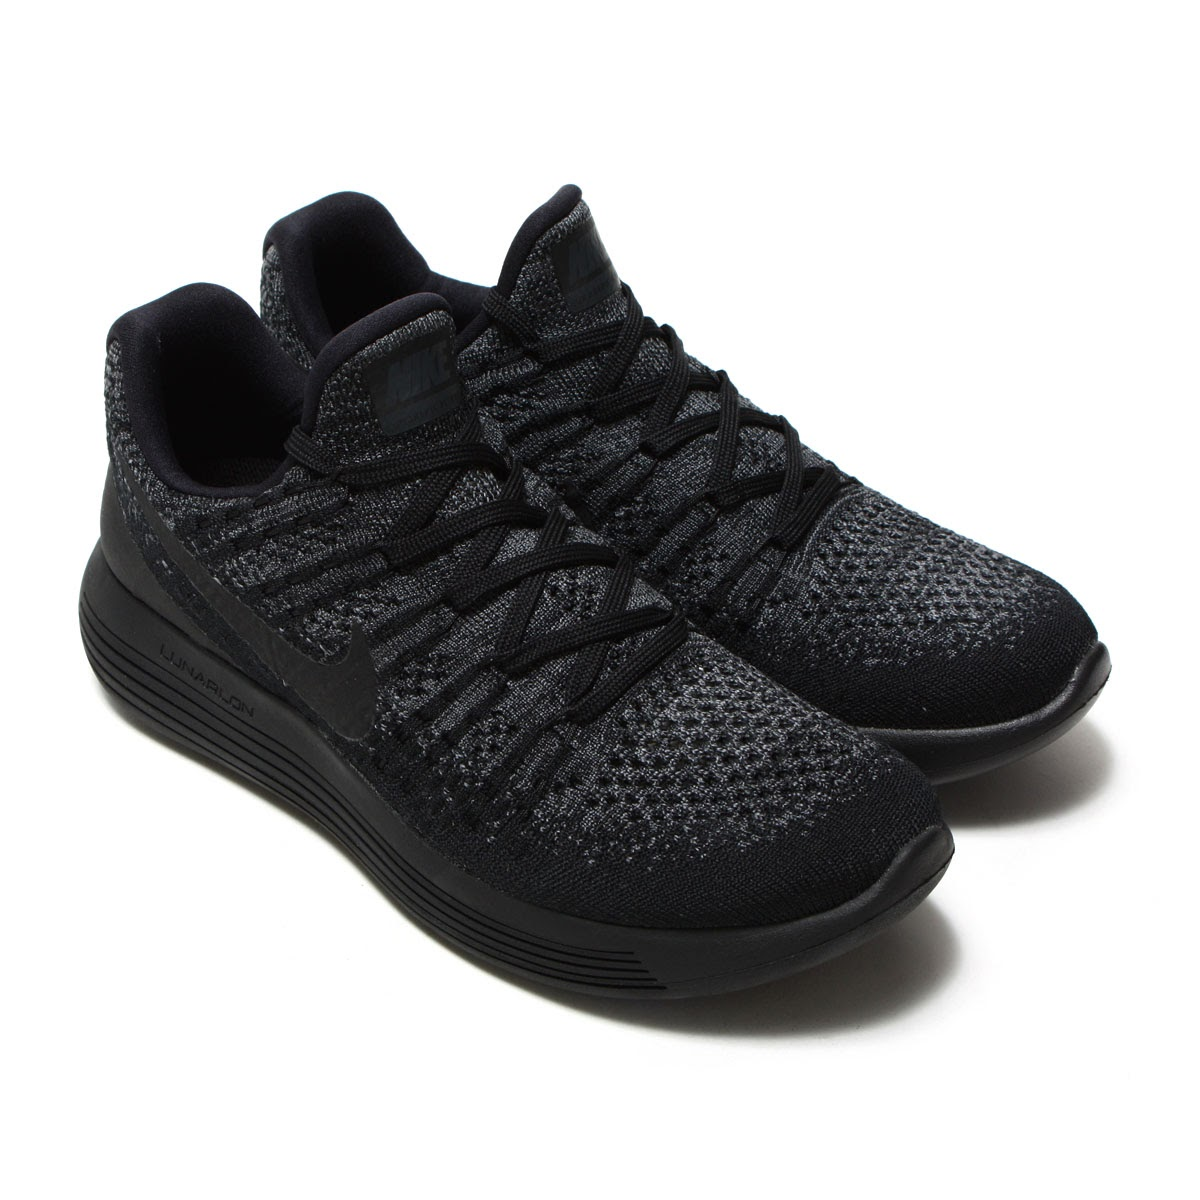 458f9e7a7de ... aliexpress nike w lunarepic low flyknit 2 nike women luna epic loaf rye  knit 2 black